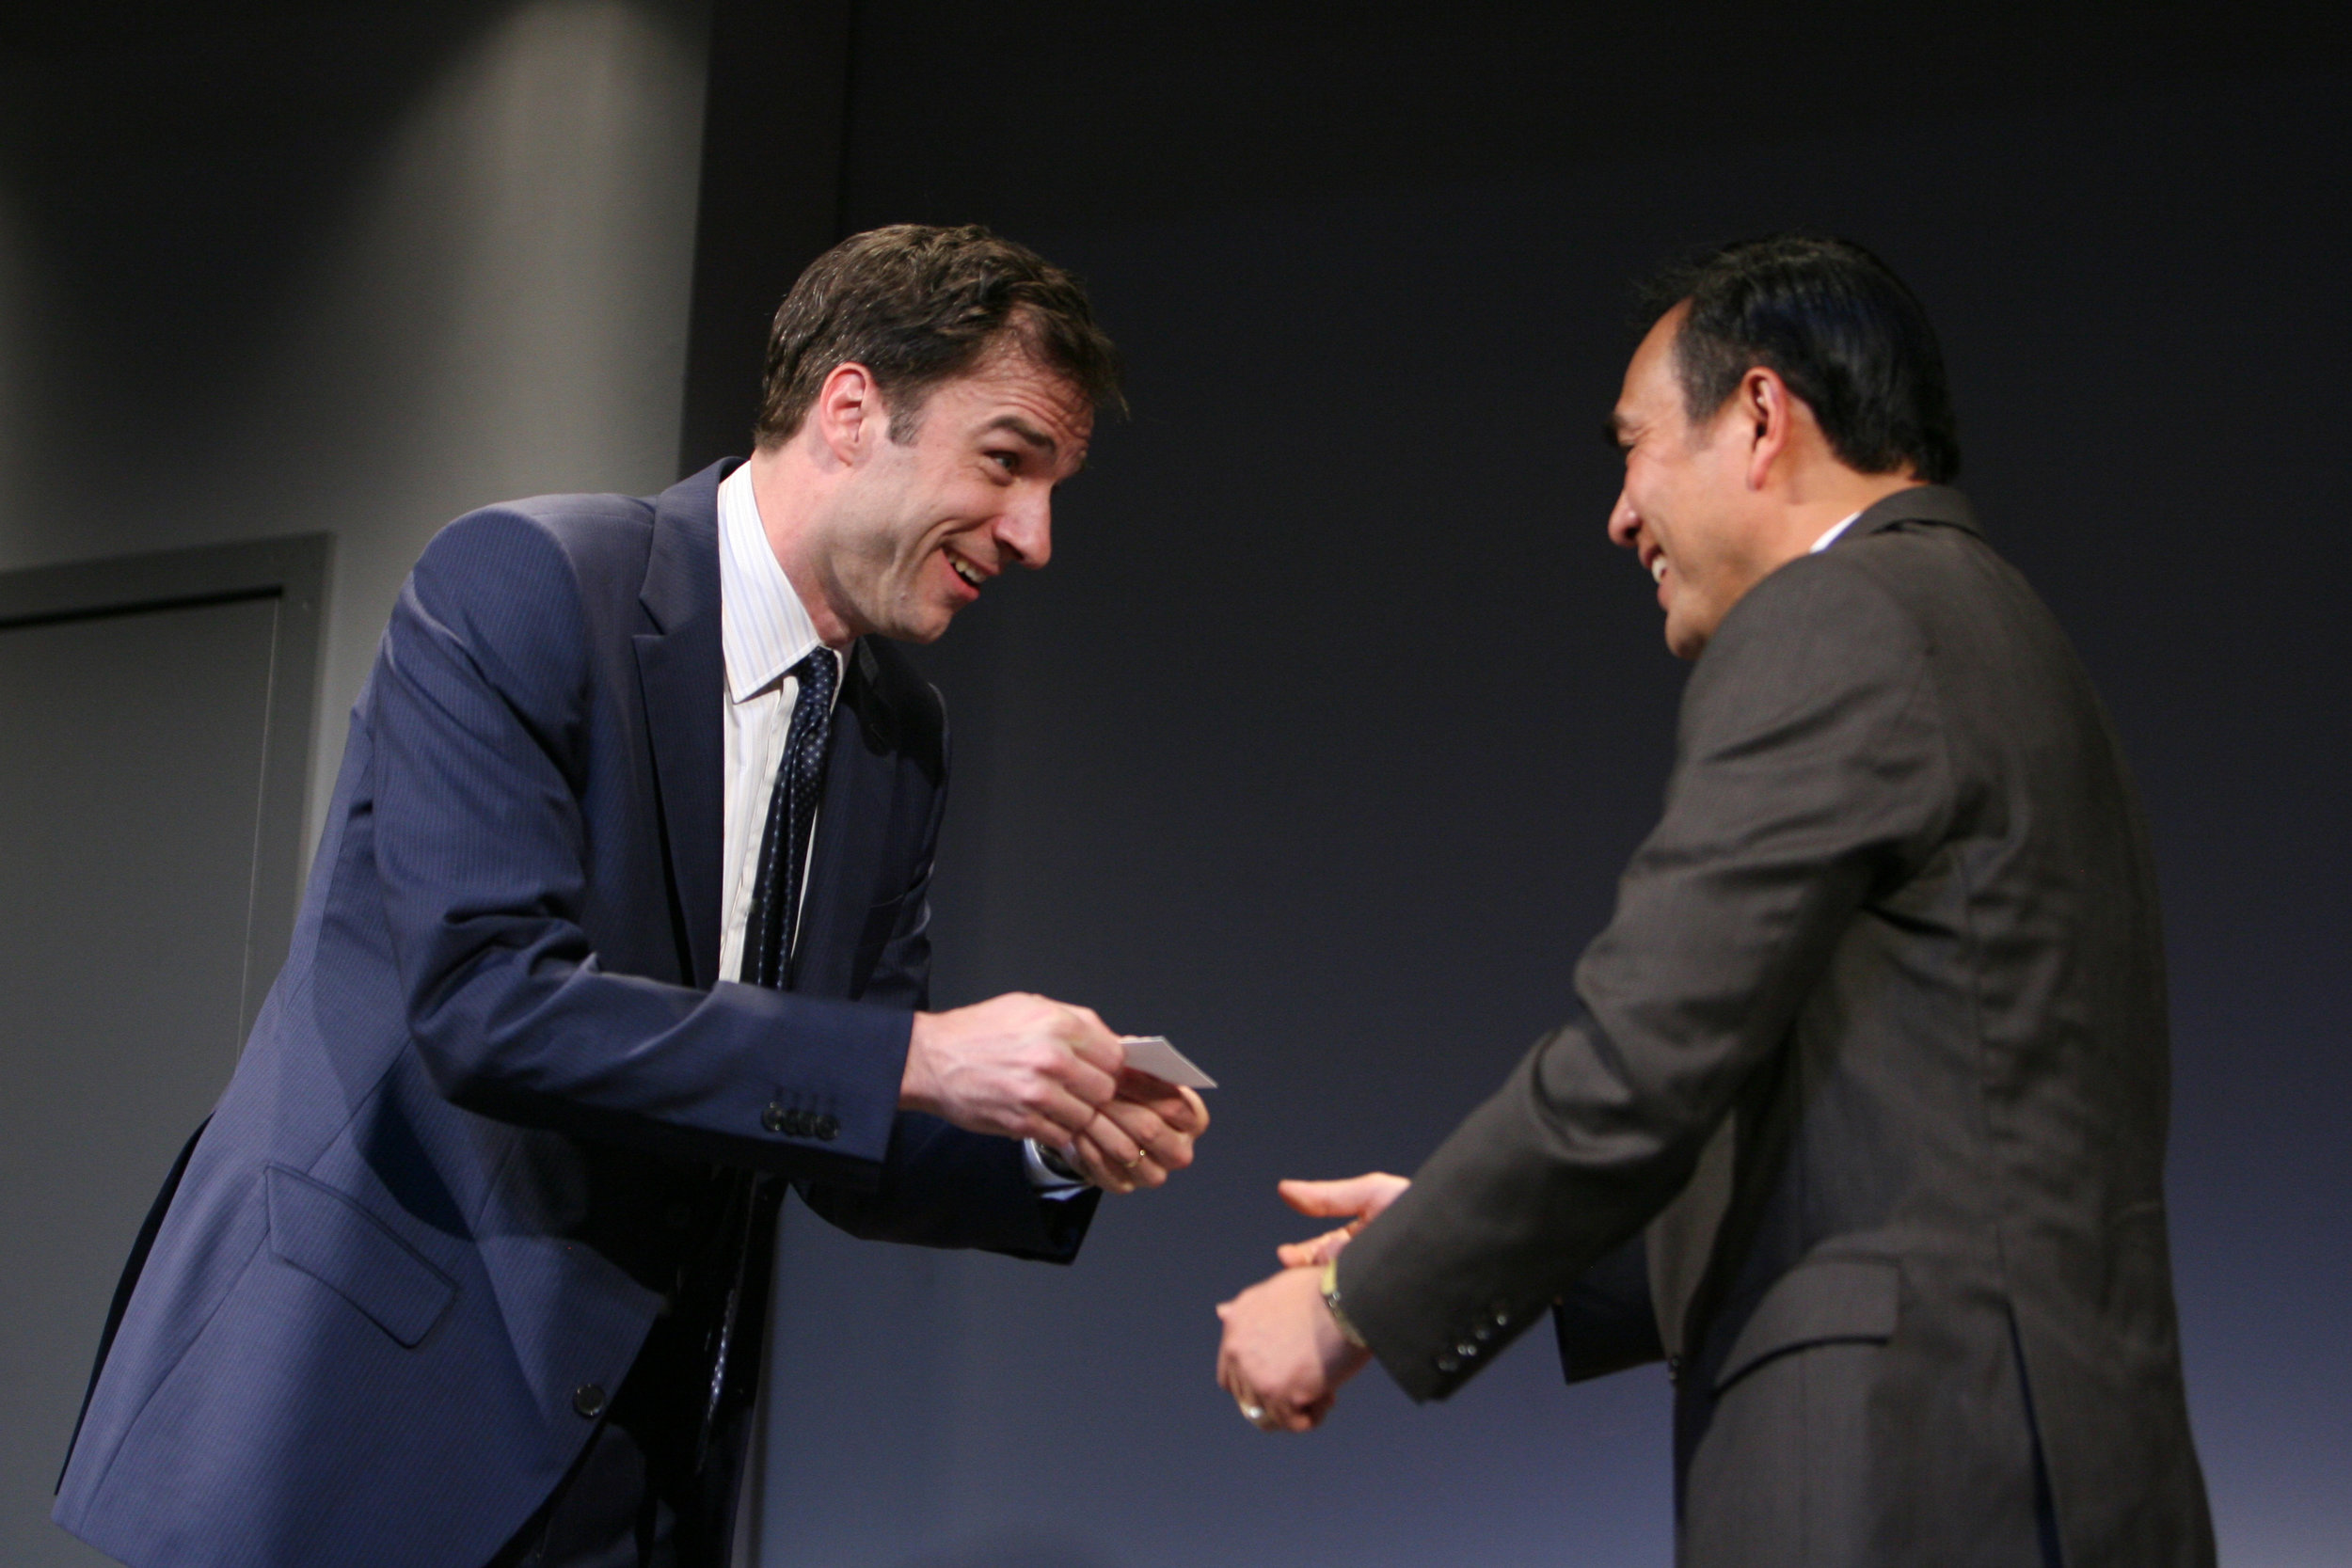 James Waterston and Larry Zhang. Photo by Eric Y. Exit for the Goodman Theatre, 2011